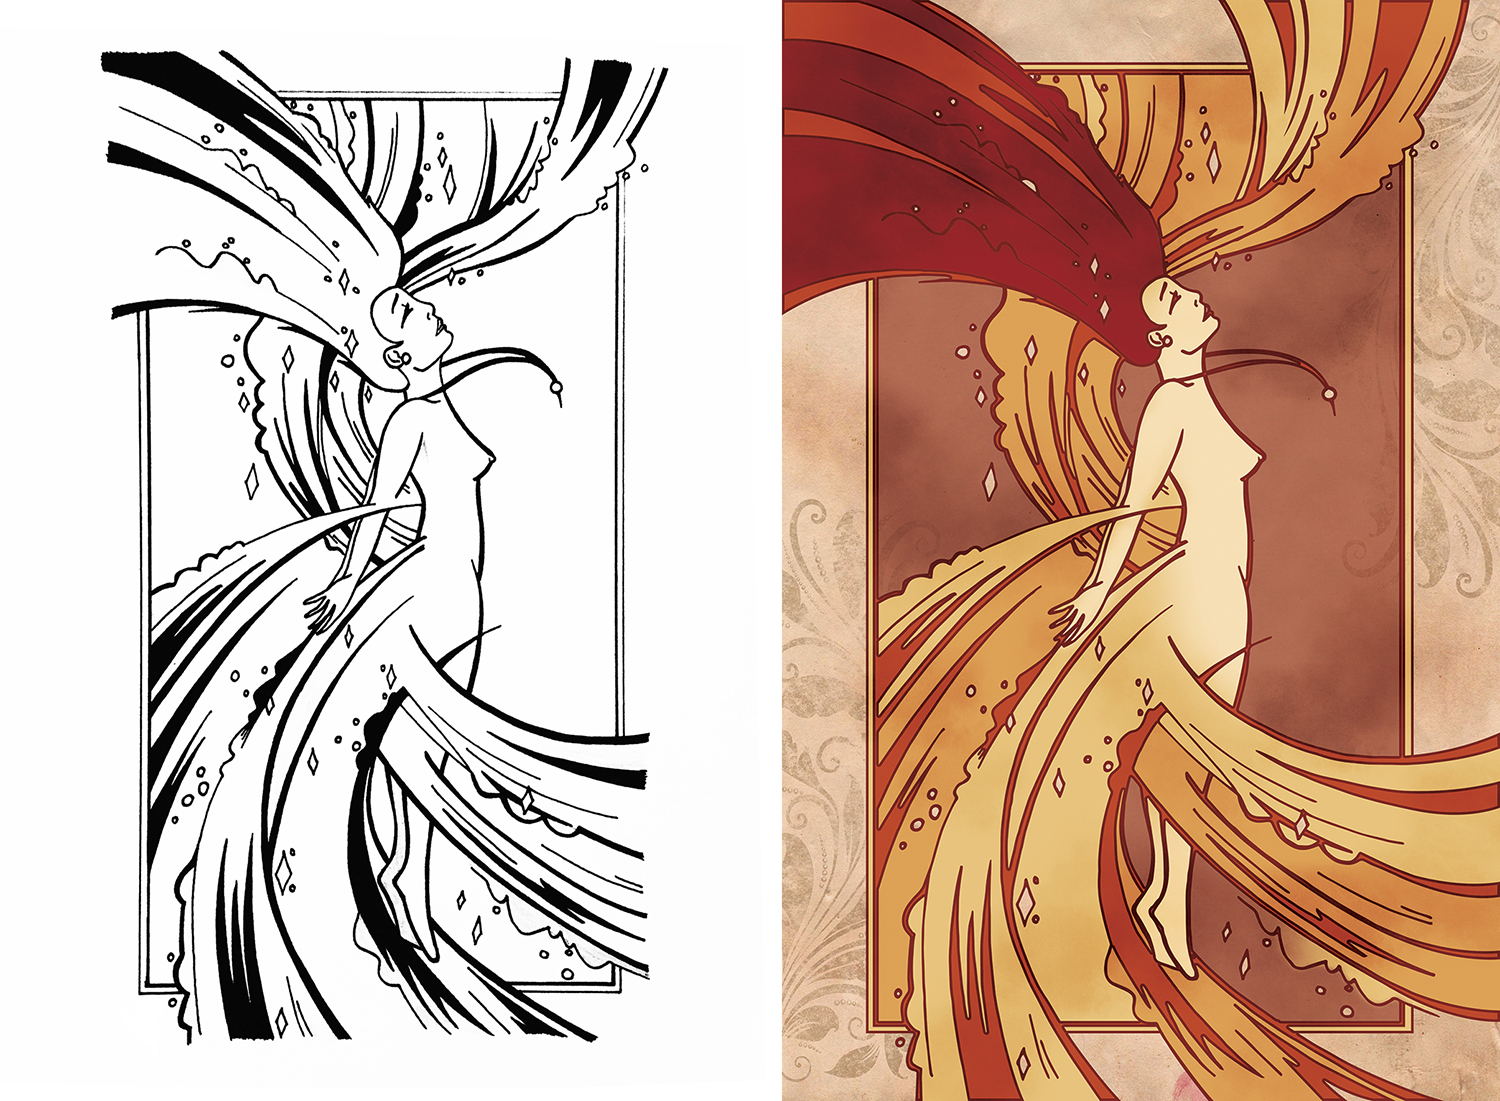 An exercise for Drawing class: create a flat black and white line drawing by hand, and bring it into a digital environment using colour, texture and dimension. My illustration explored the organic forms and warm colour palette of Art Nouveau design through a whimsical illustration of a fairy in transformation.